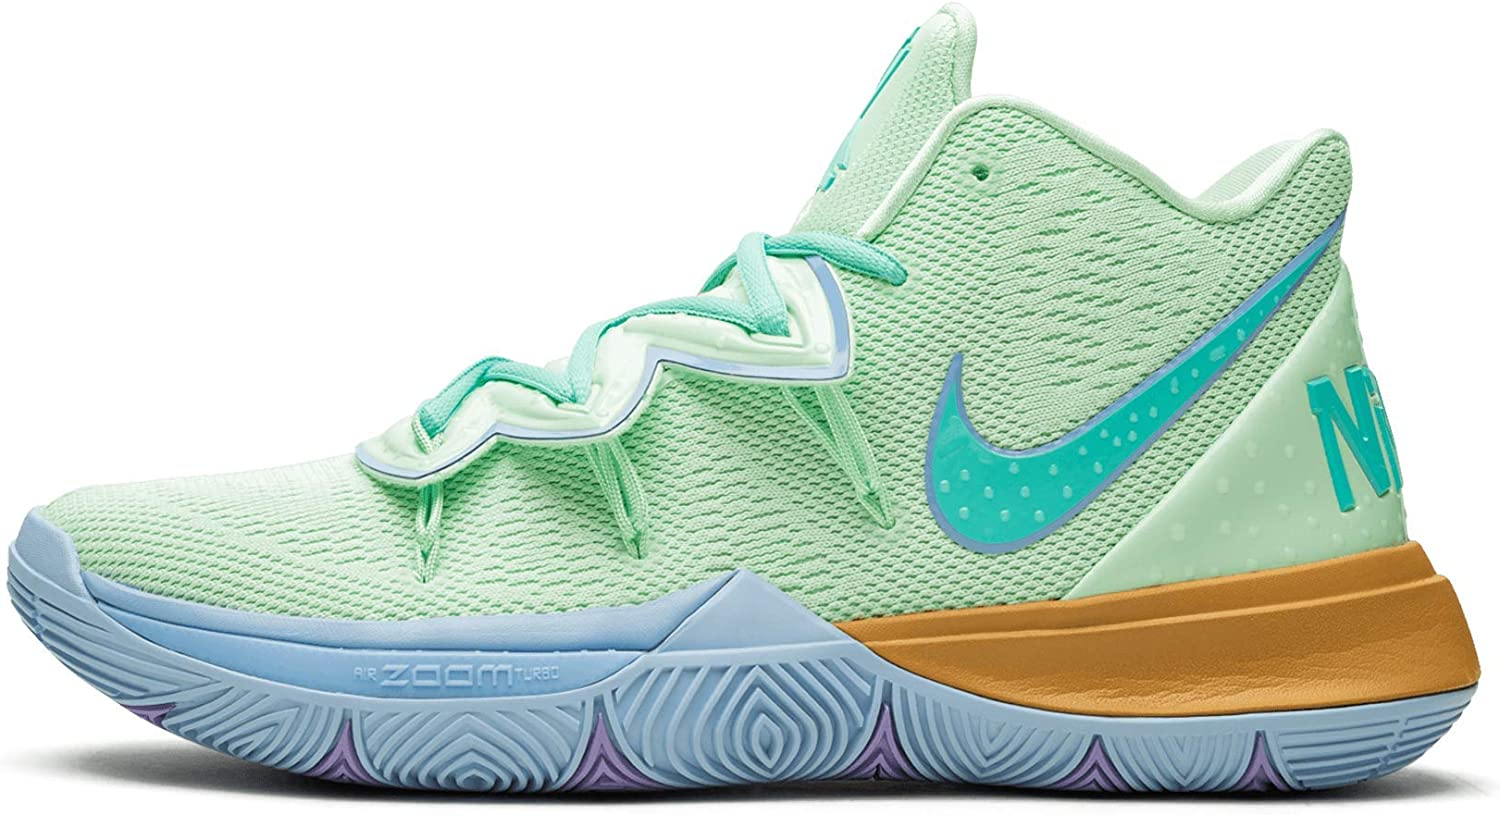 Nike Kyrie 5 (Frosted Spruce/Aluminum